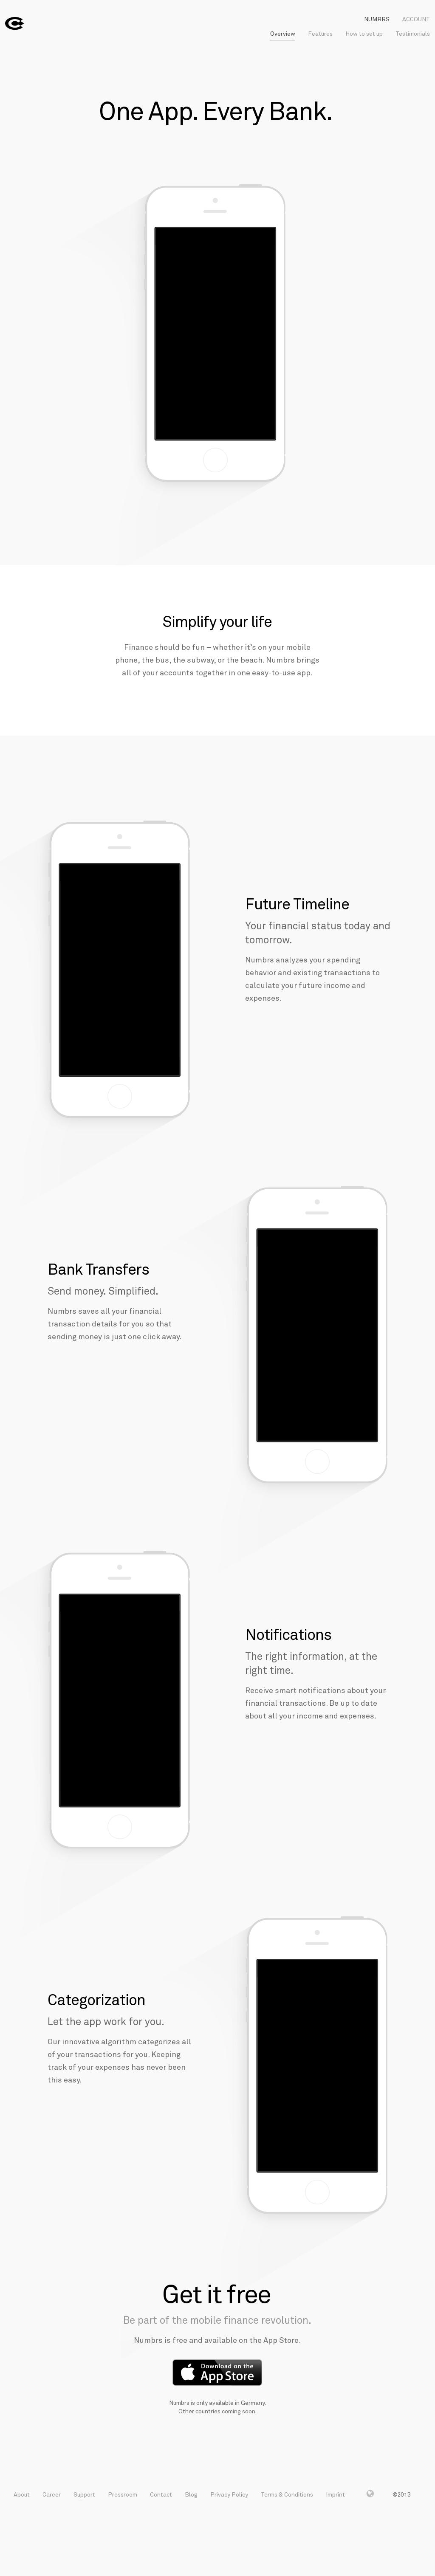 Centralway - Online Banking App full screen picture otherwise very plain